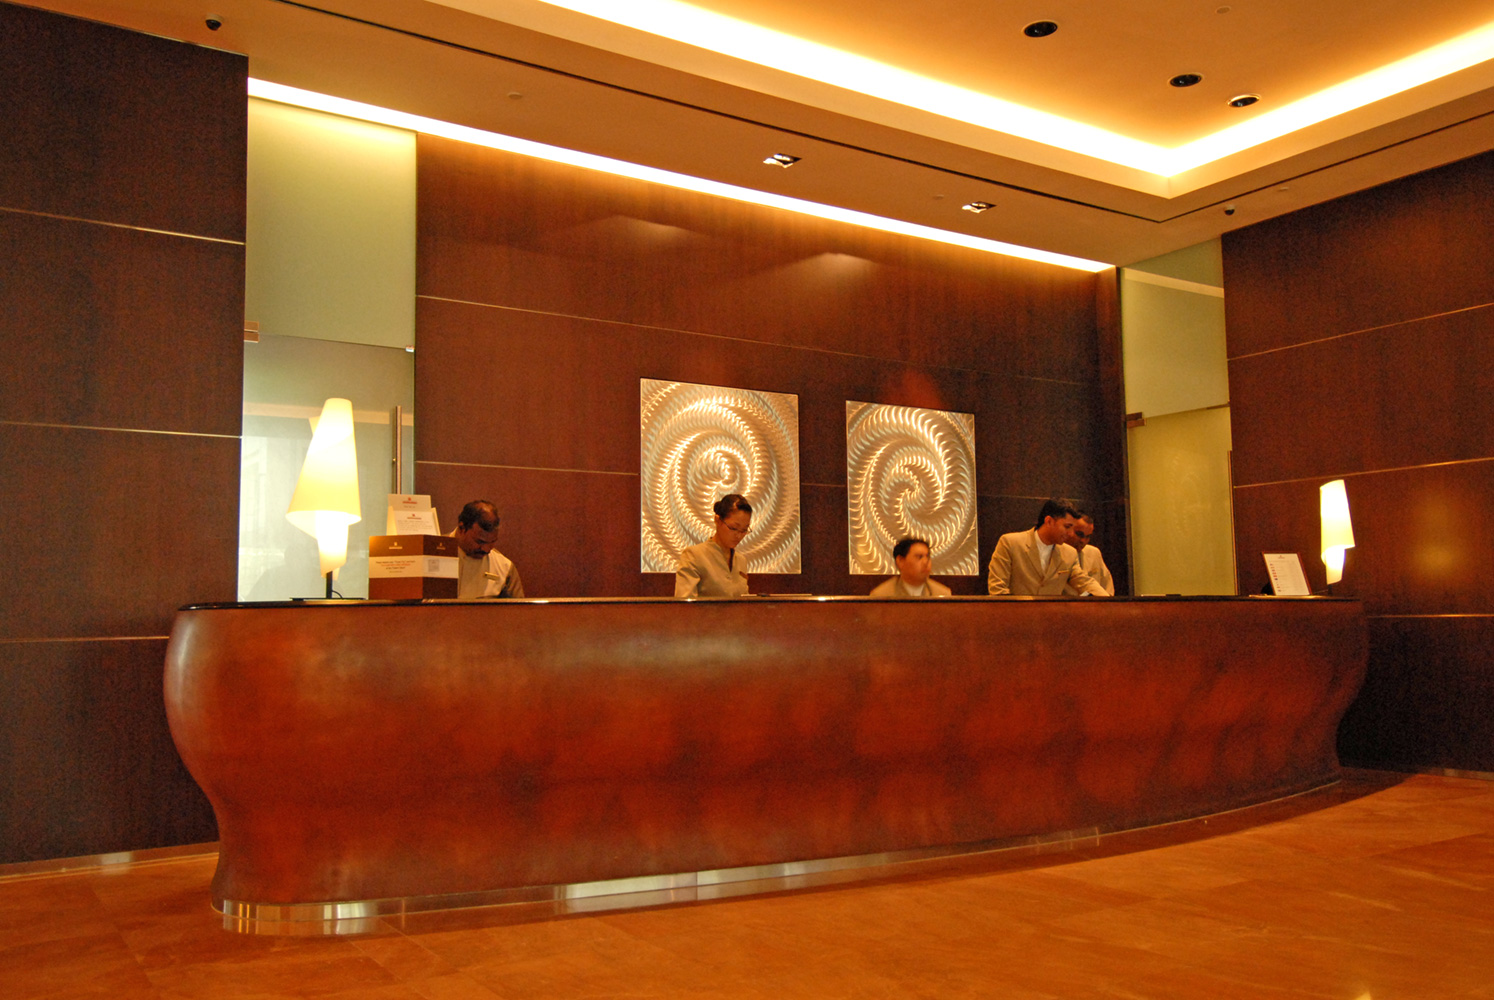 Reception Counter at Traders Hotel Singapore